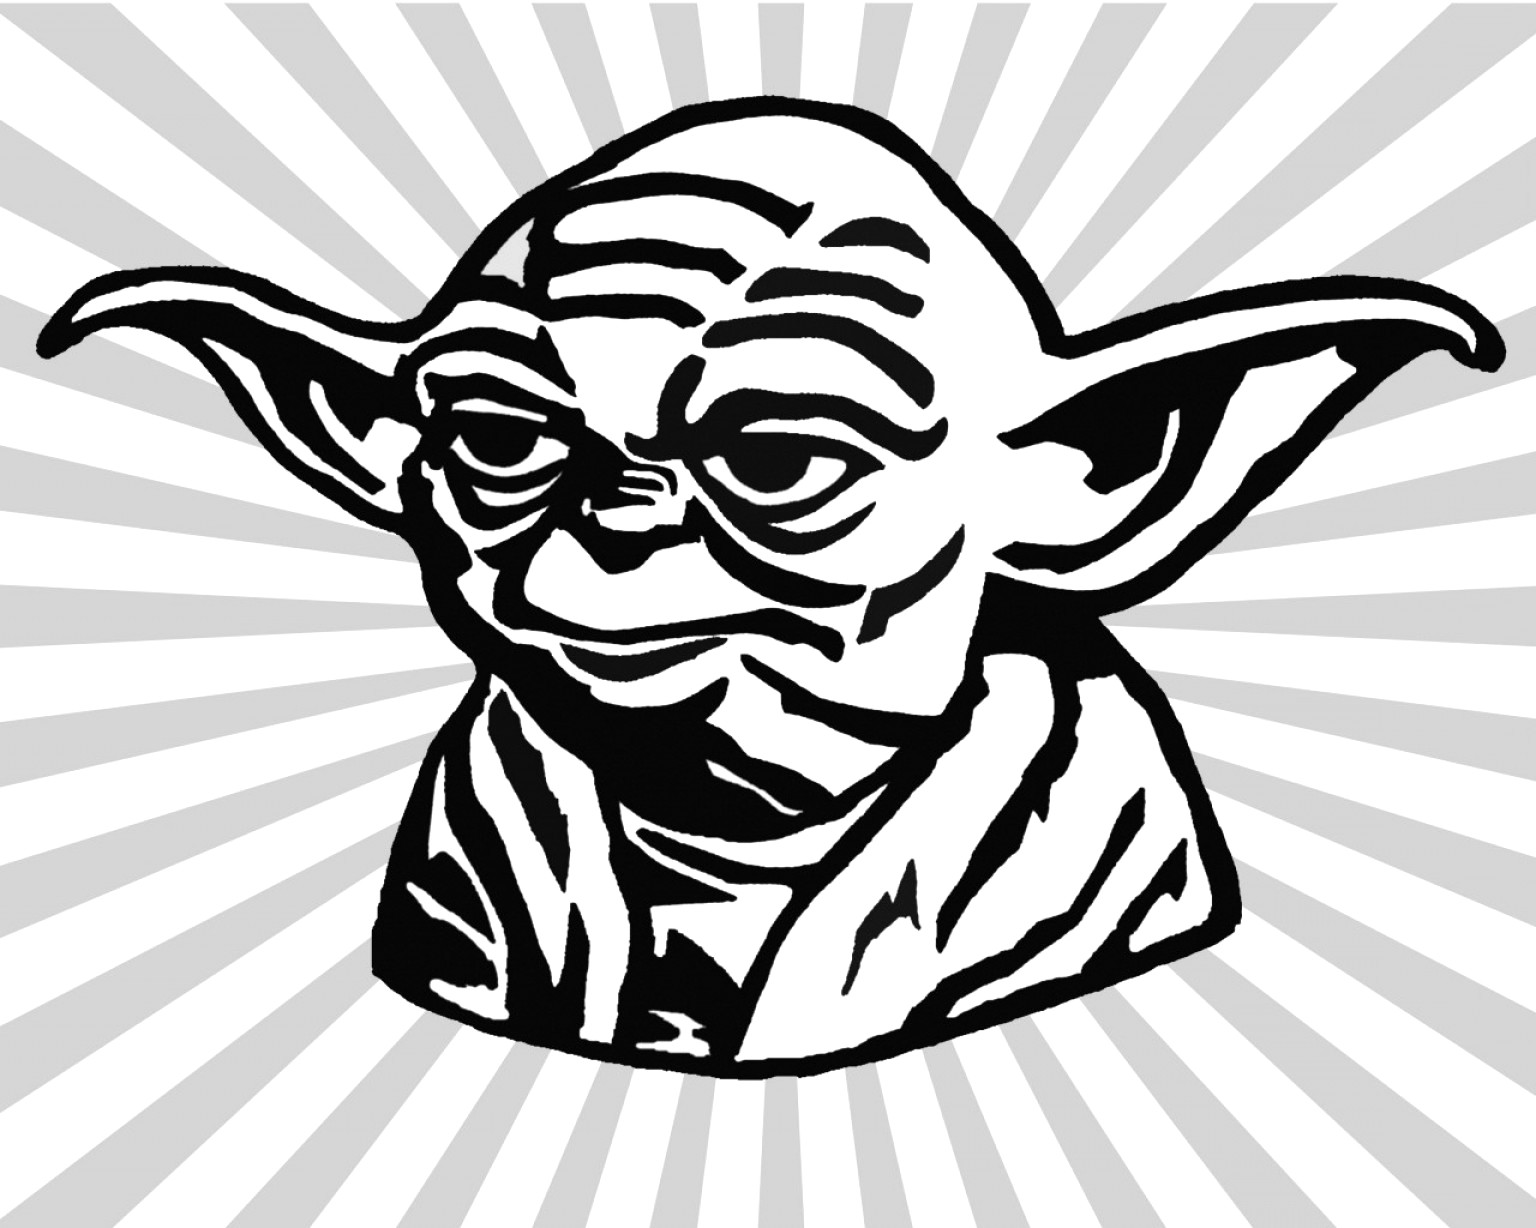 Yoda clipart black and white